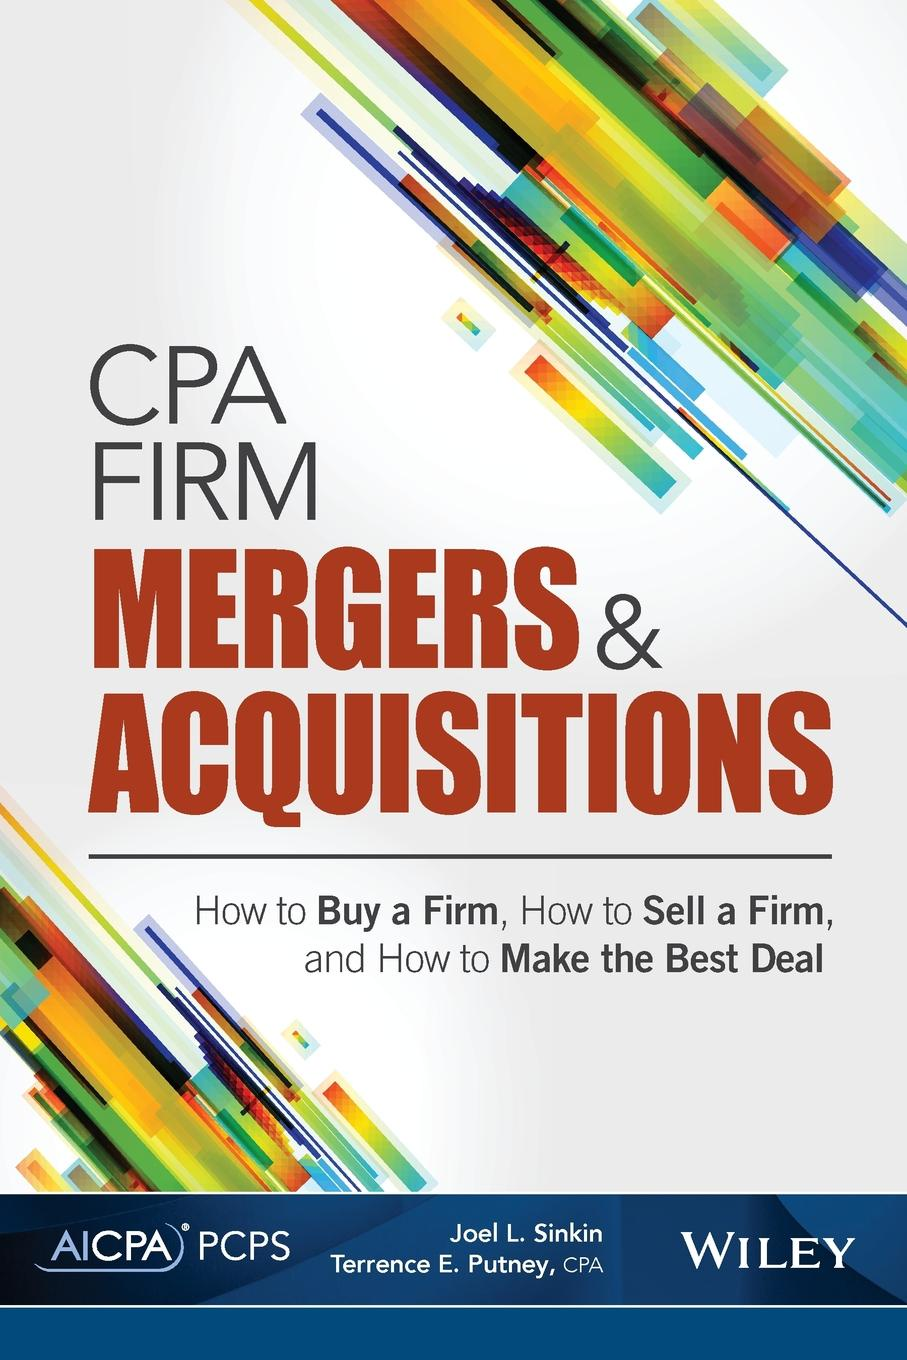 Joel L. Sinkin CPA Firm Mergers and Acquisitions. How to Buy a Firm, How to Sell a Firm, and How to Make the Best Deal топ curvy firm foundation